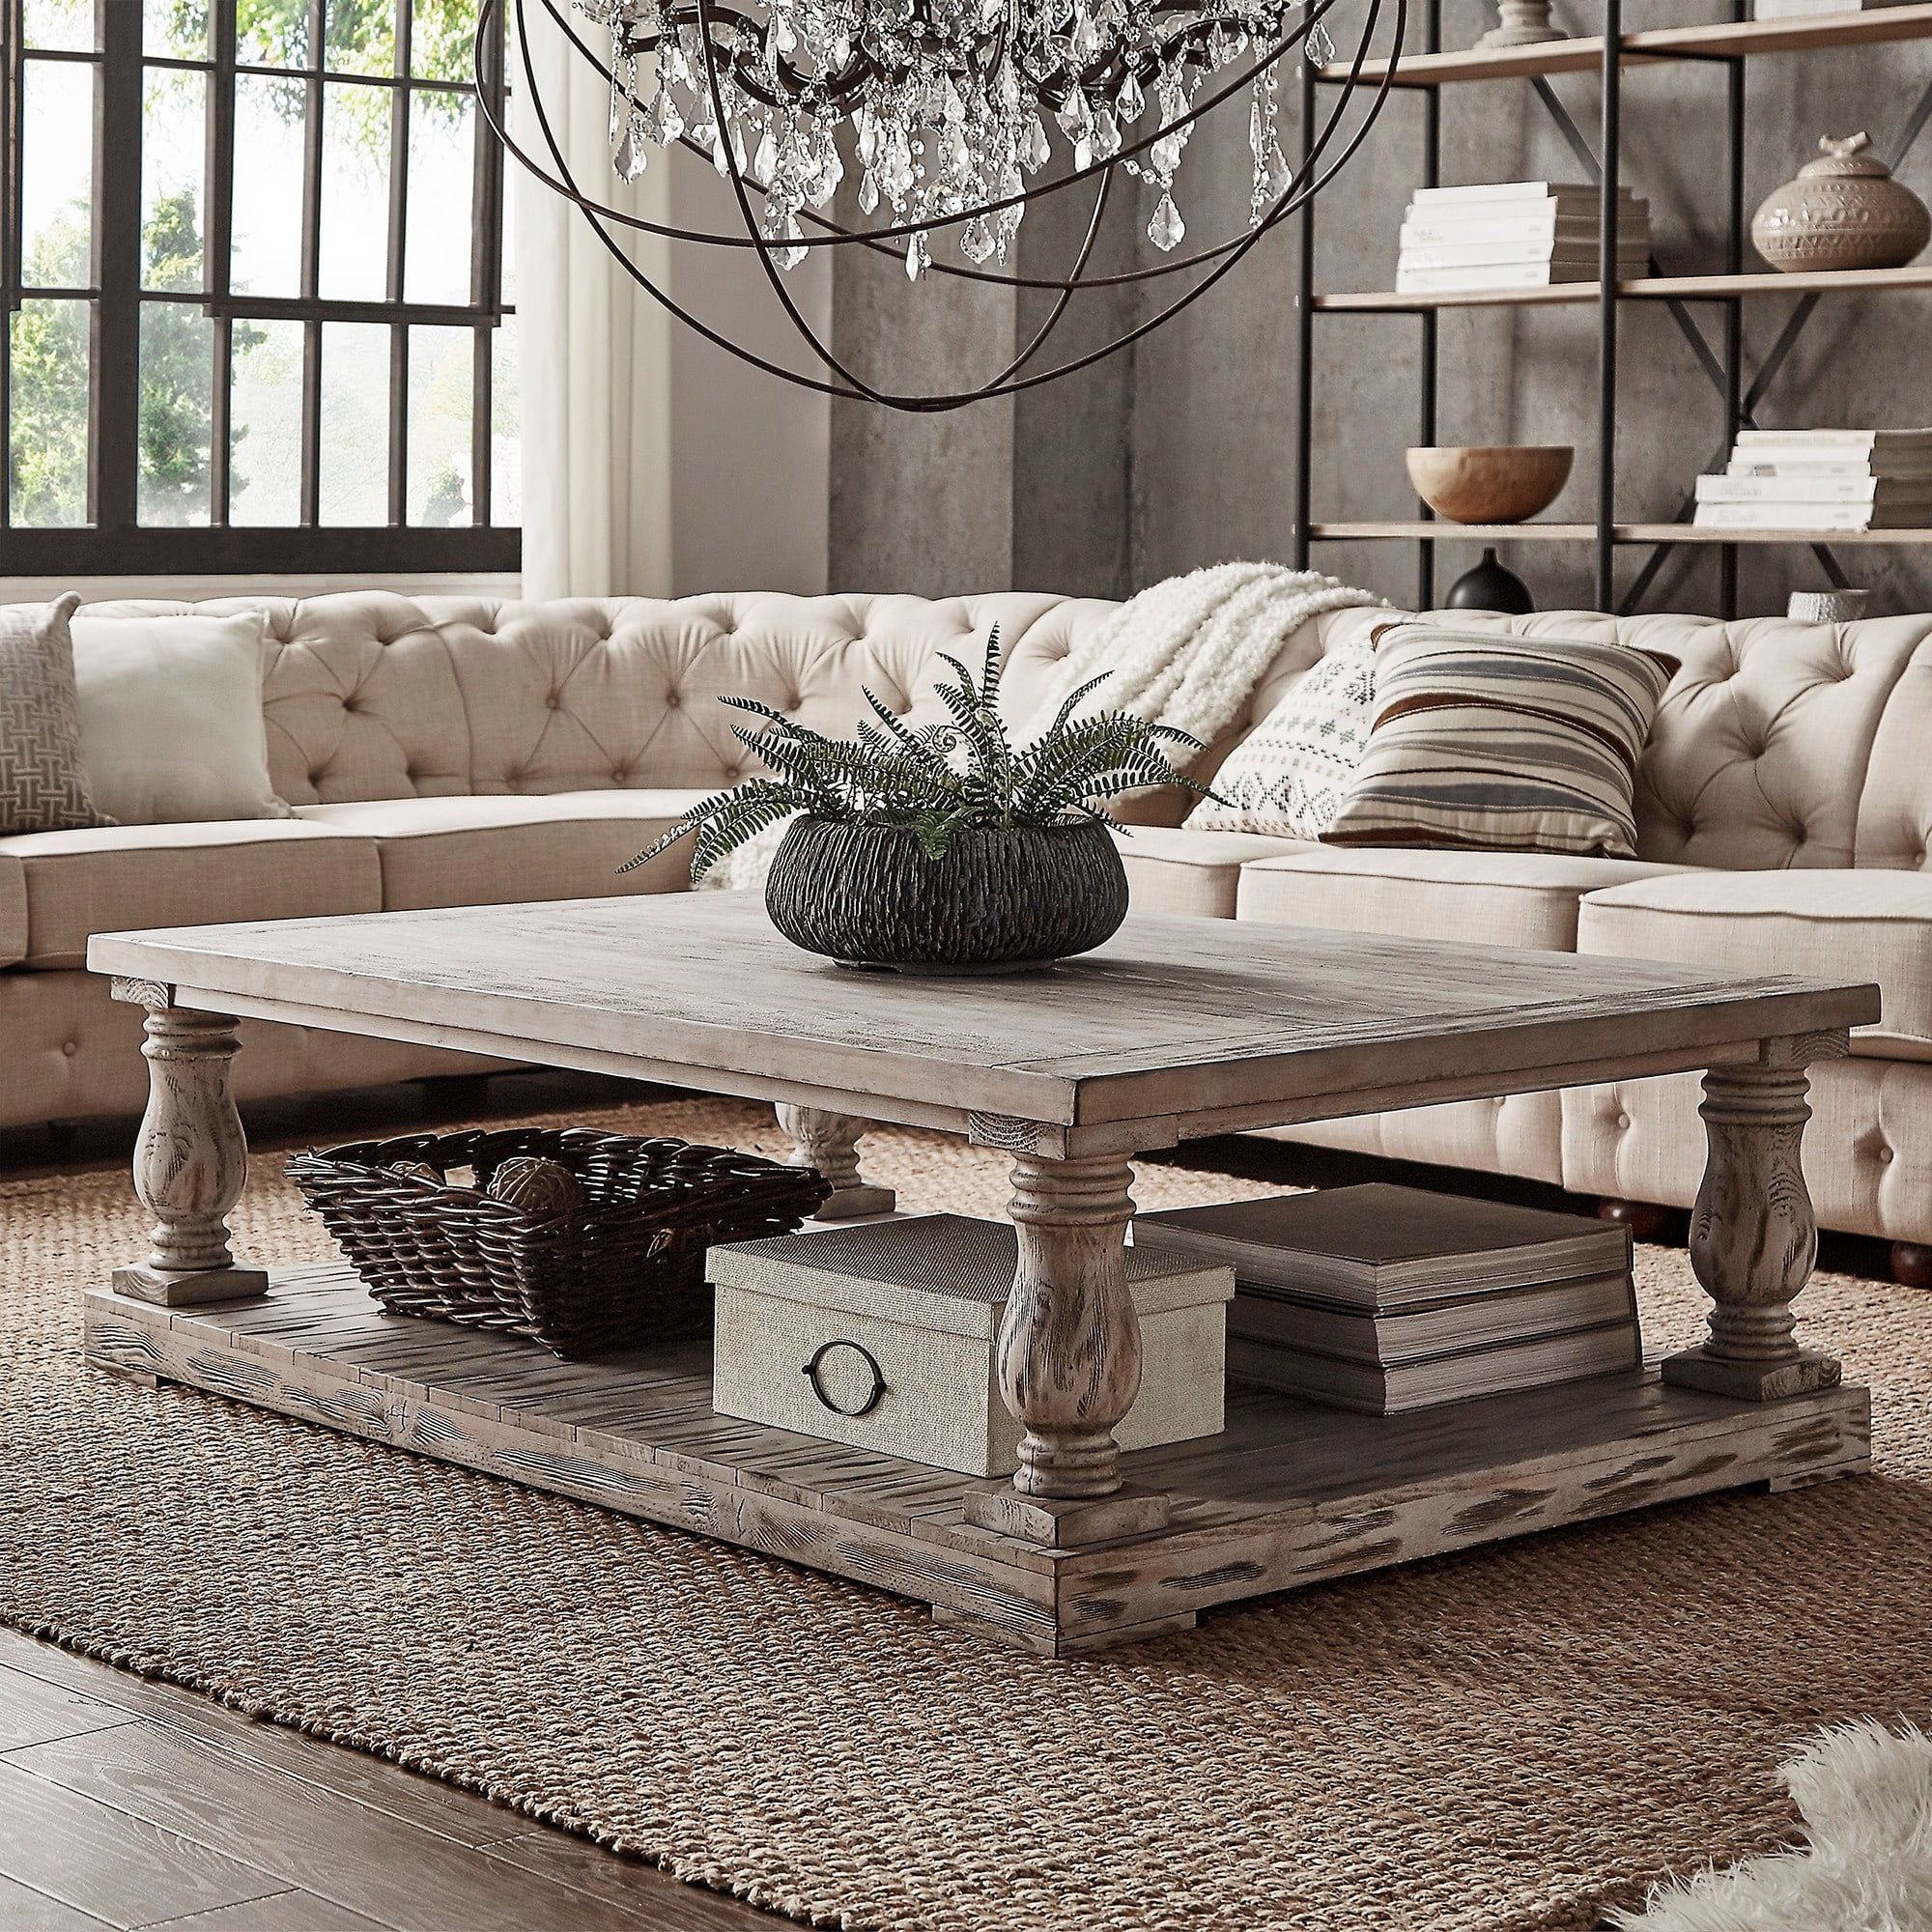 Signal Hills Edmaire Rustic Baluster 60 Inch Coffee Table By Walmart Com Walmart Com